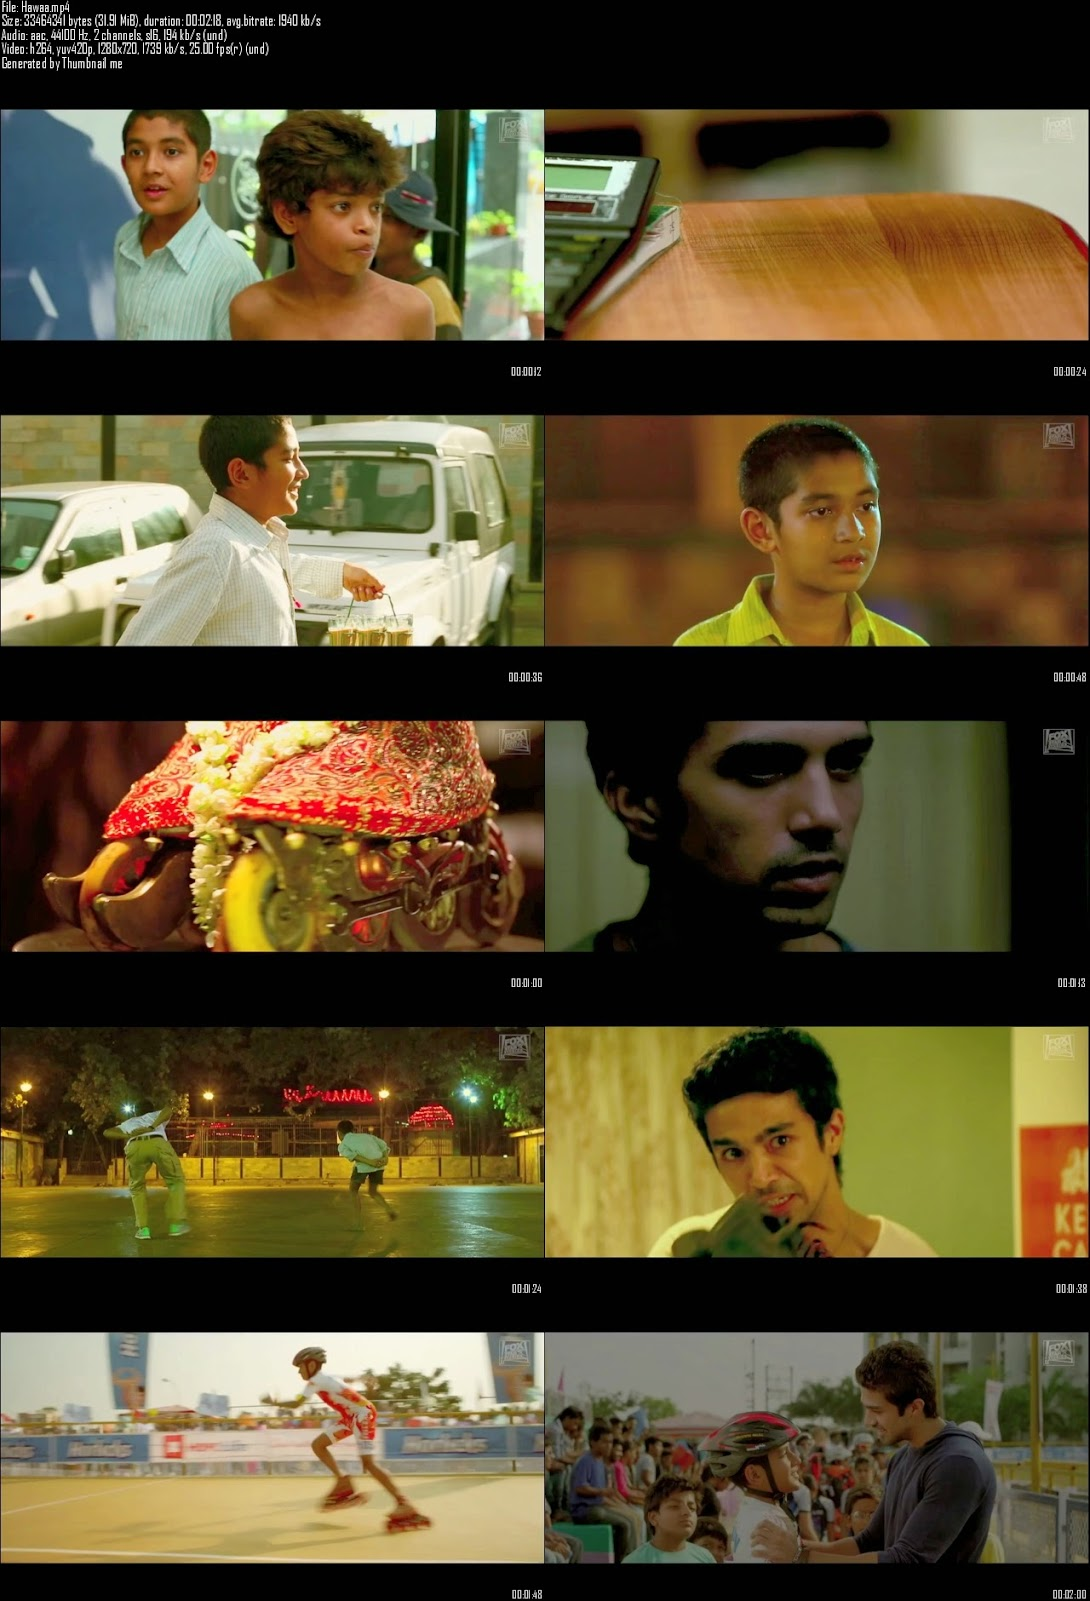 Mediafire Resumable Download Link For Teaser Promo Of Hawaa Hawaai (2014)